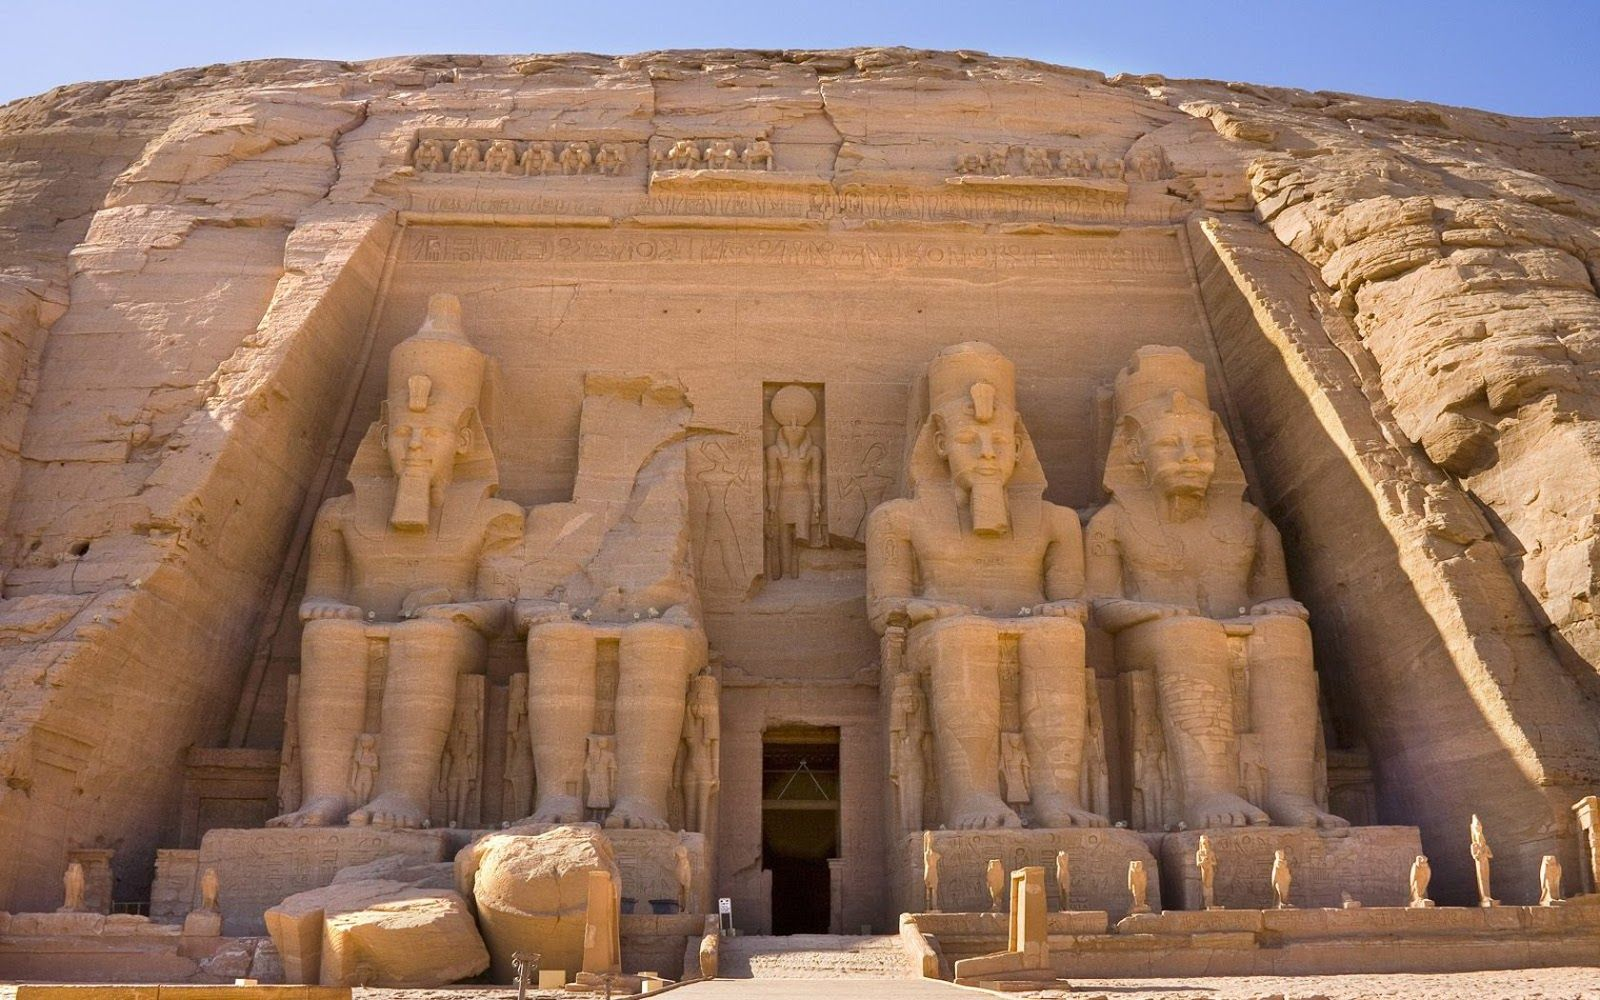 Ancient Egyptian Architecture Sculptures Of Ramesses Ii At Abu Simbel The Way Of The